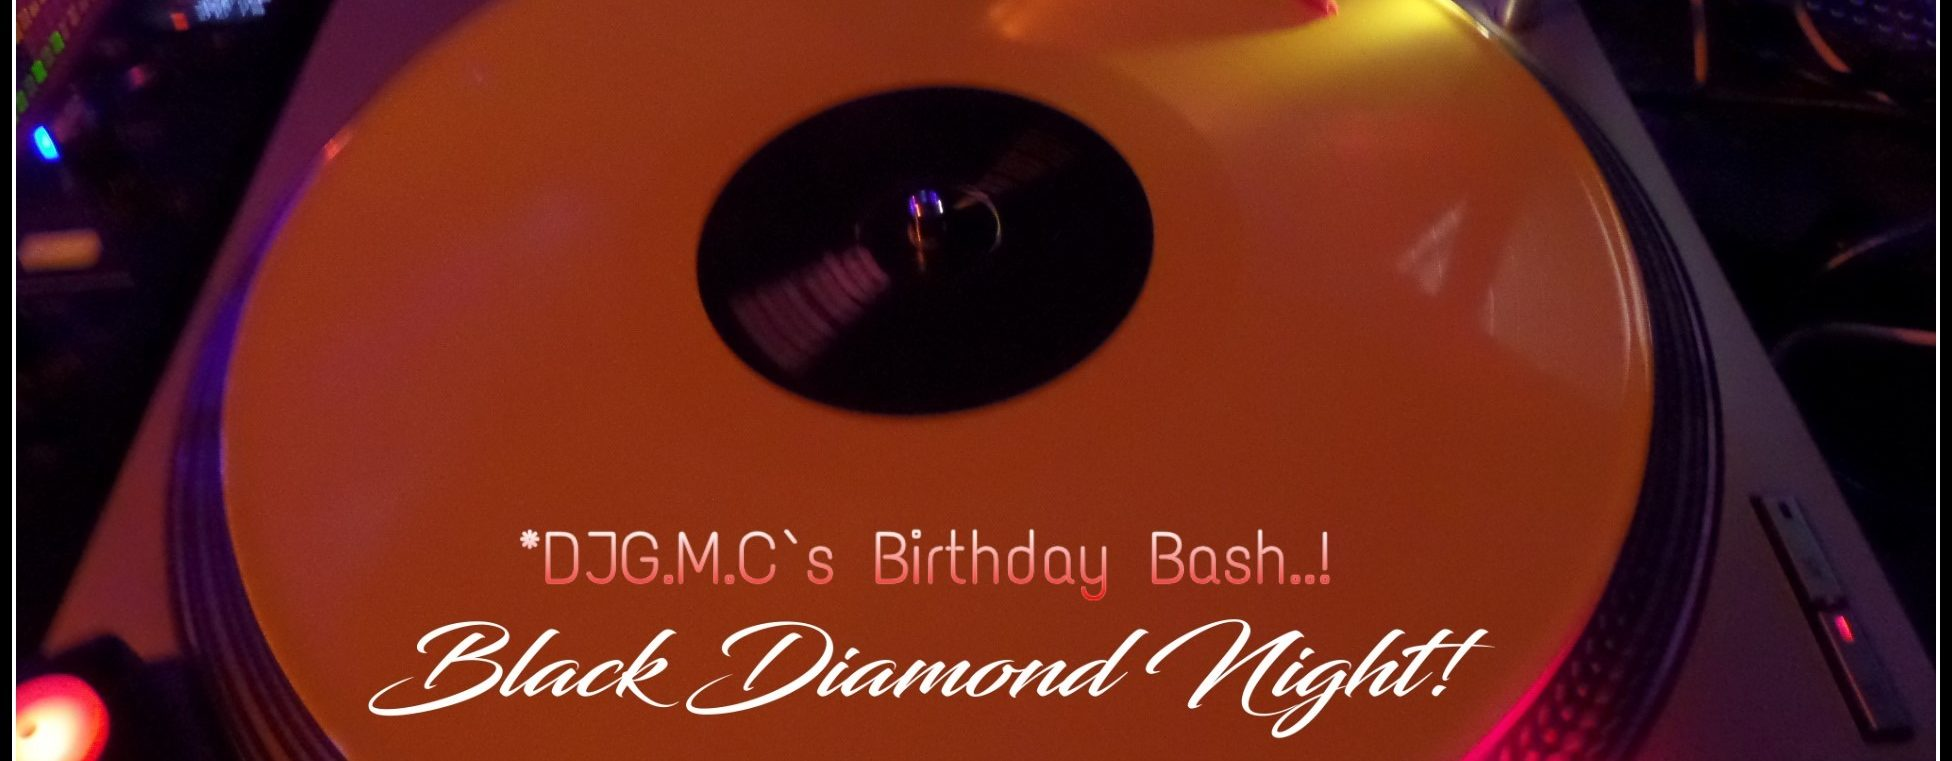 Black Diamond Night! - For Real...!